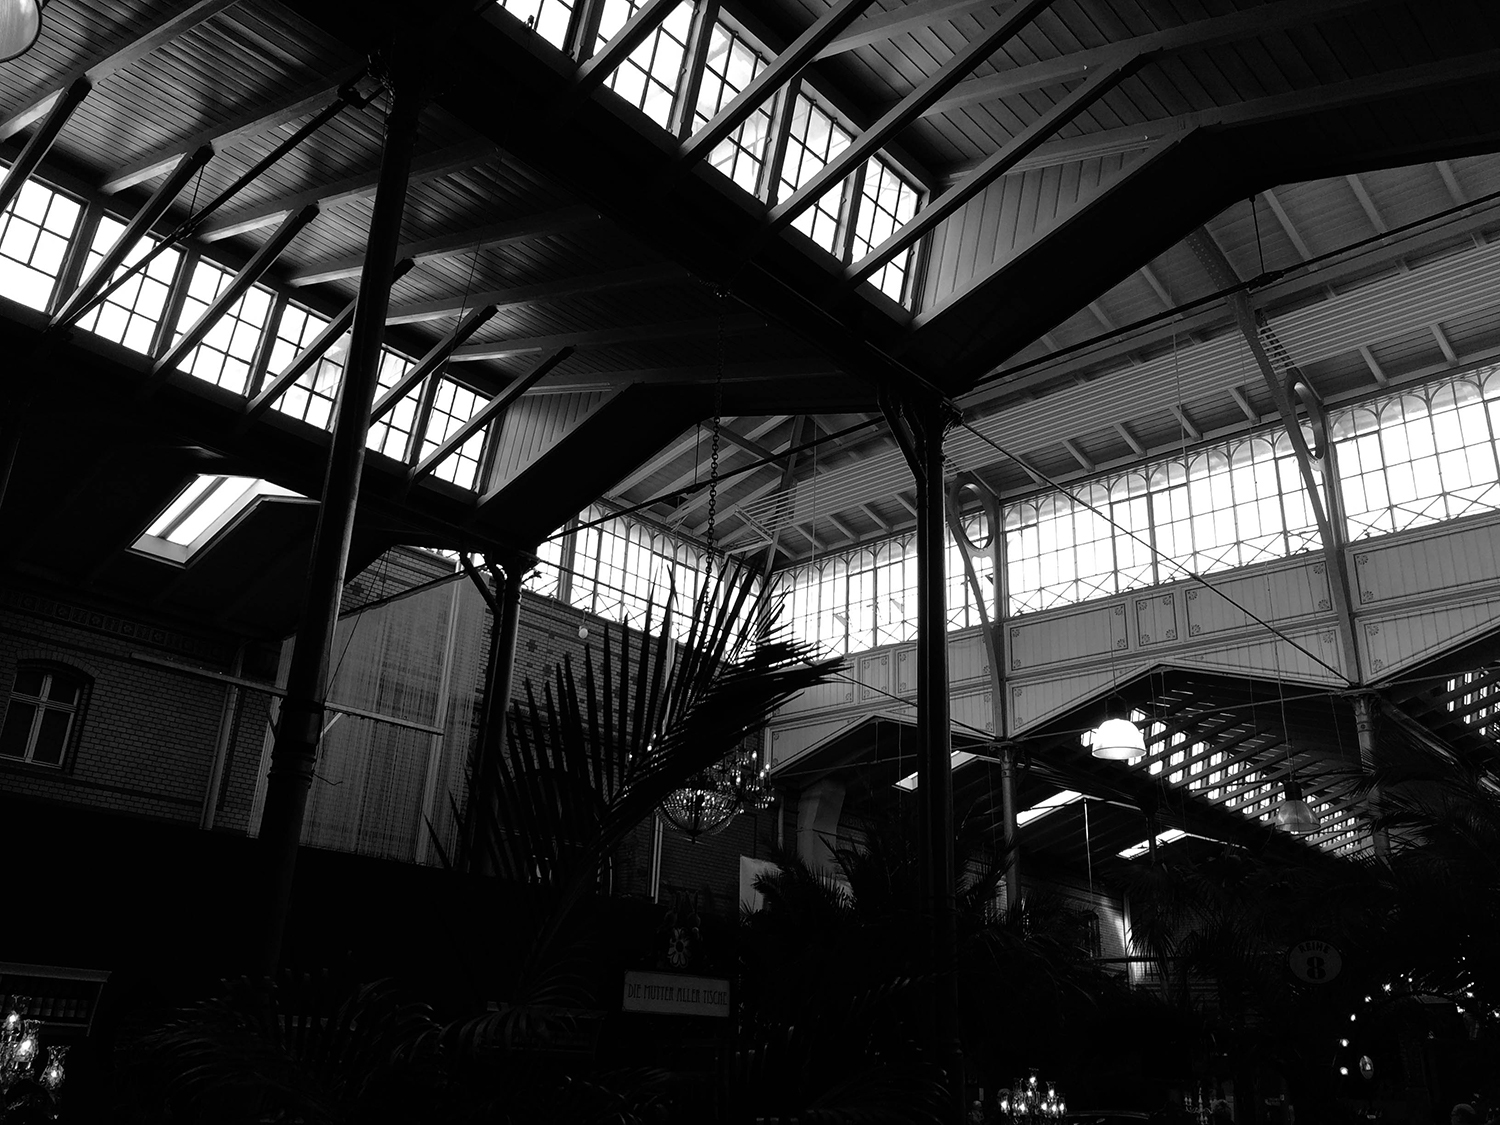 <p>Skylights and the zig-zagging roof at the Arminius Markthalle, a covered market dating from the 1890s.</p>